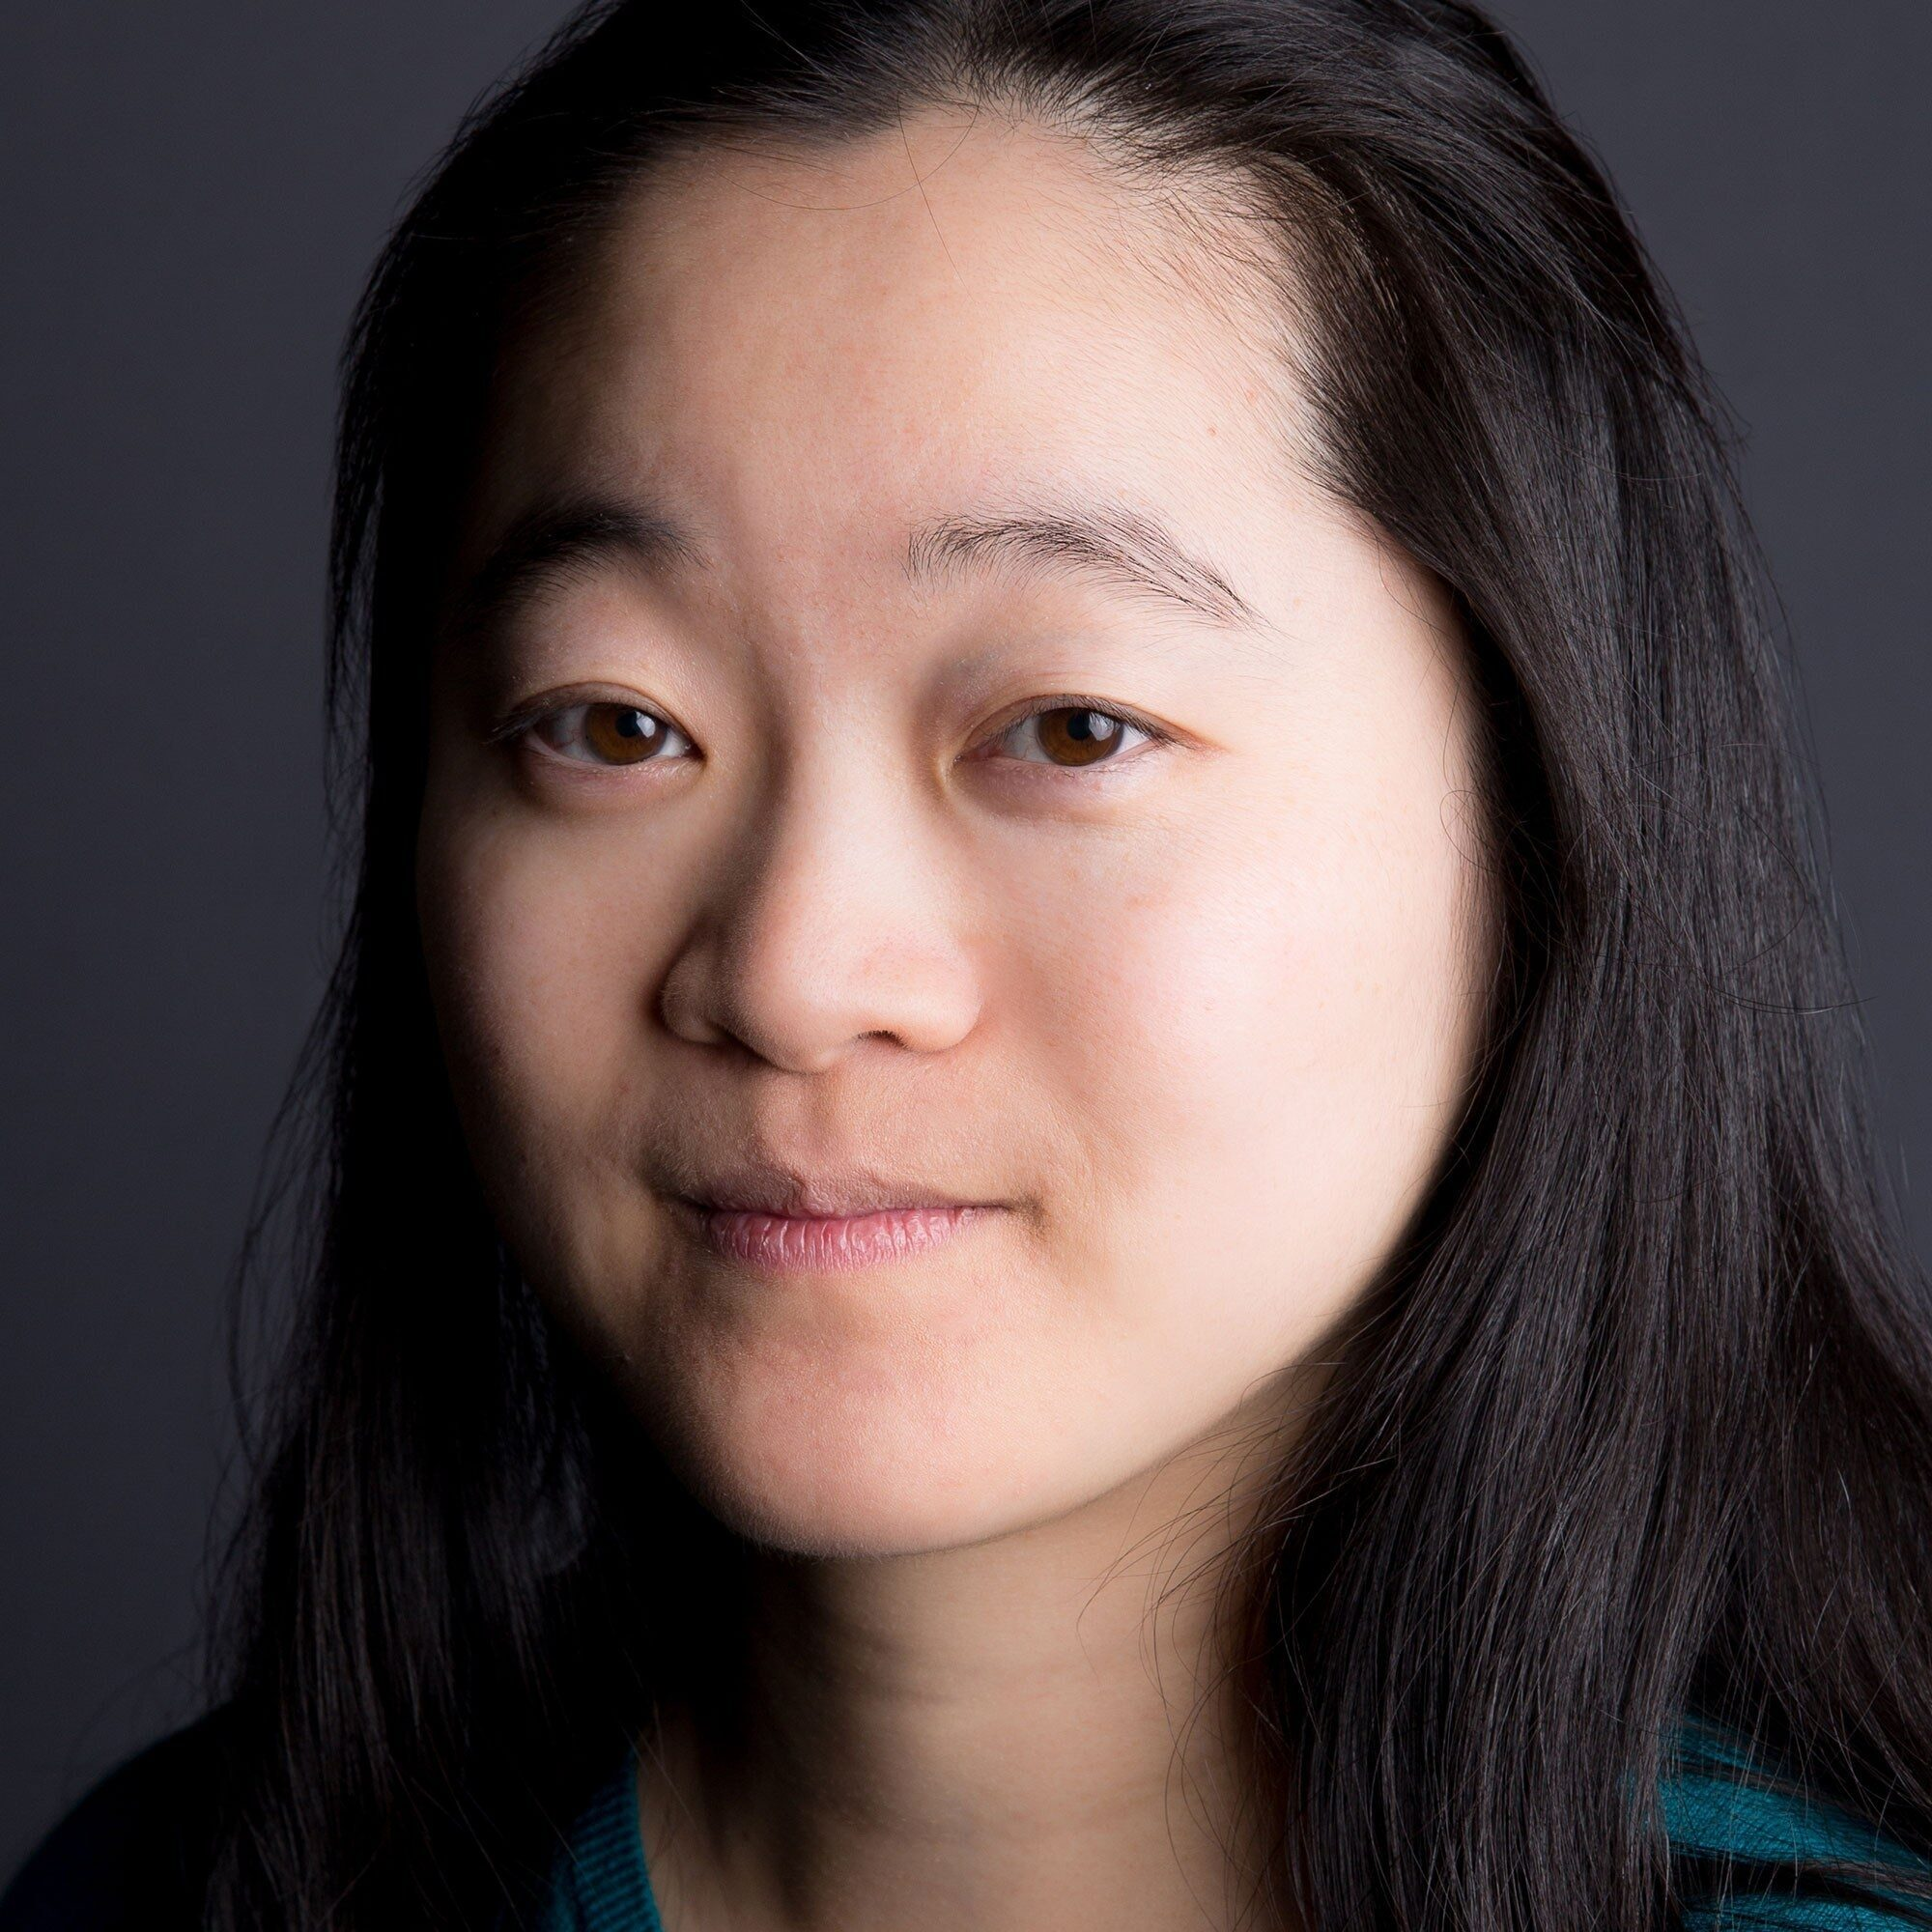 photograph of Lisa Song